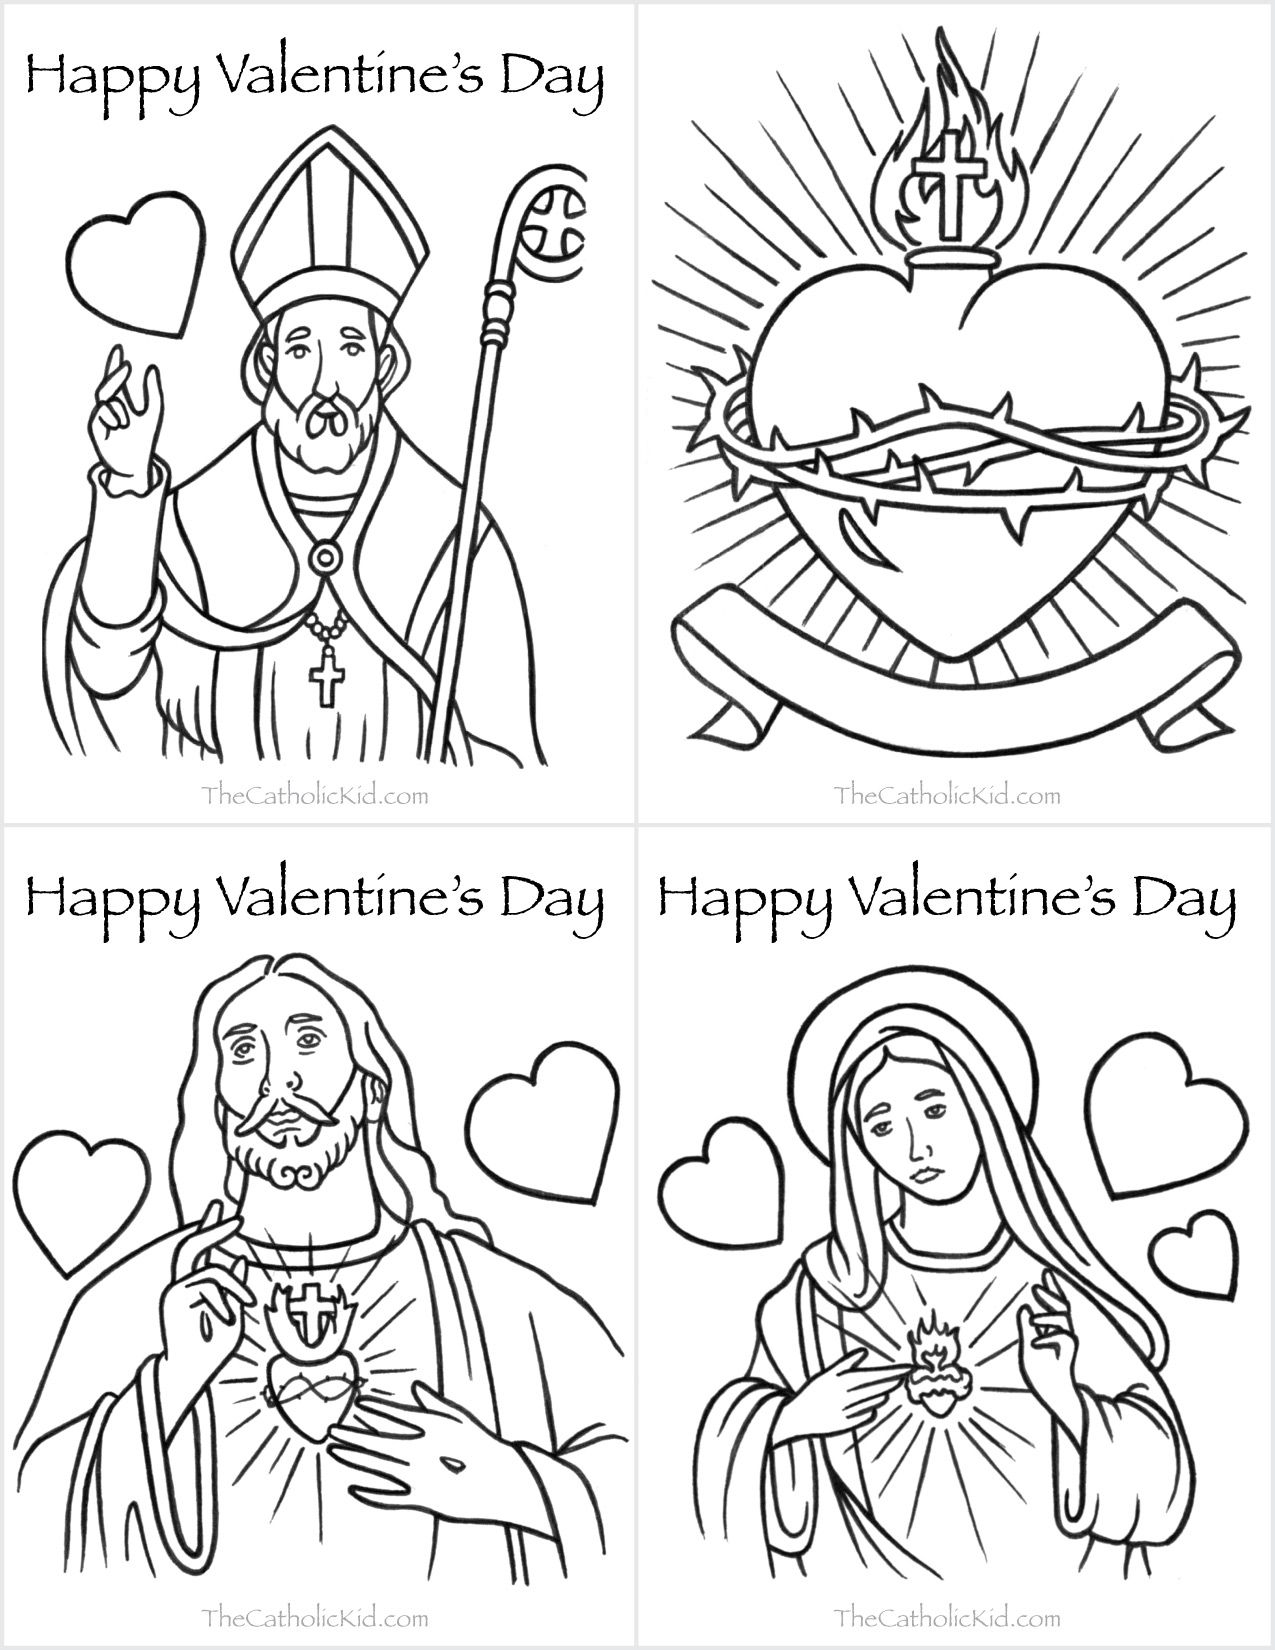 A Few Of Our Favorite Catholic Valentine S Day Cards To